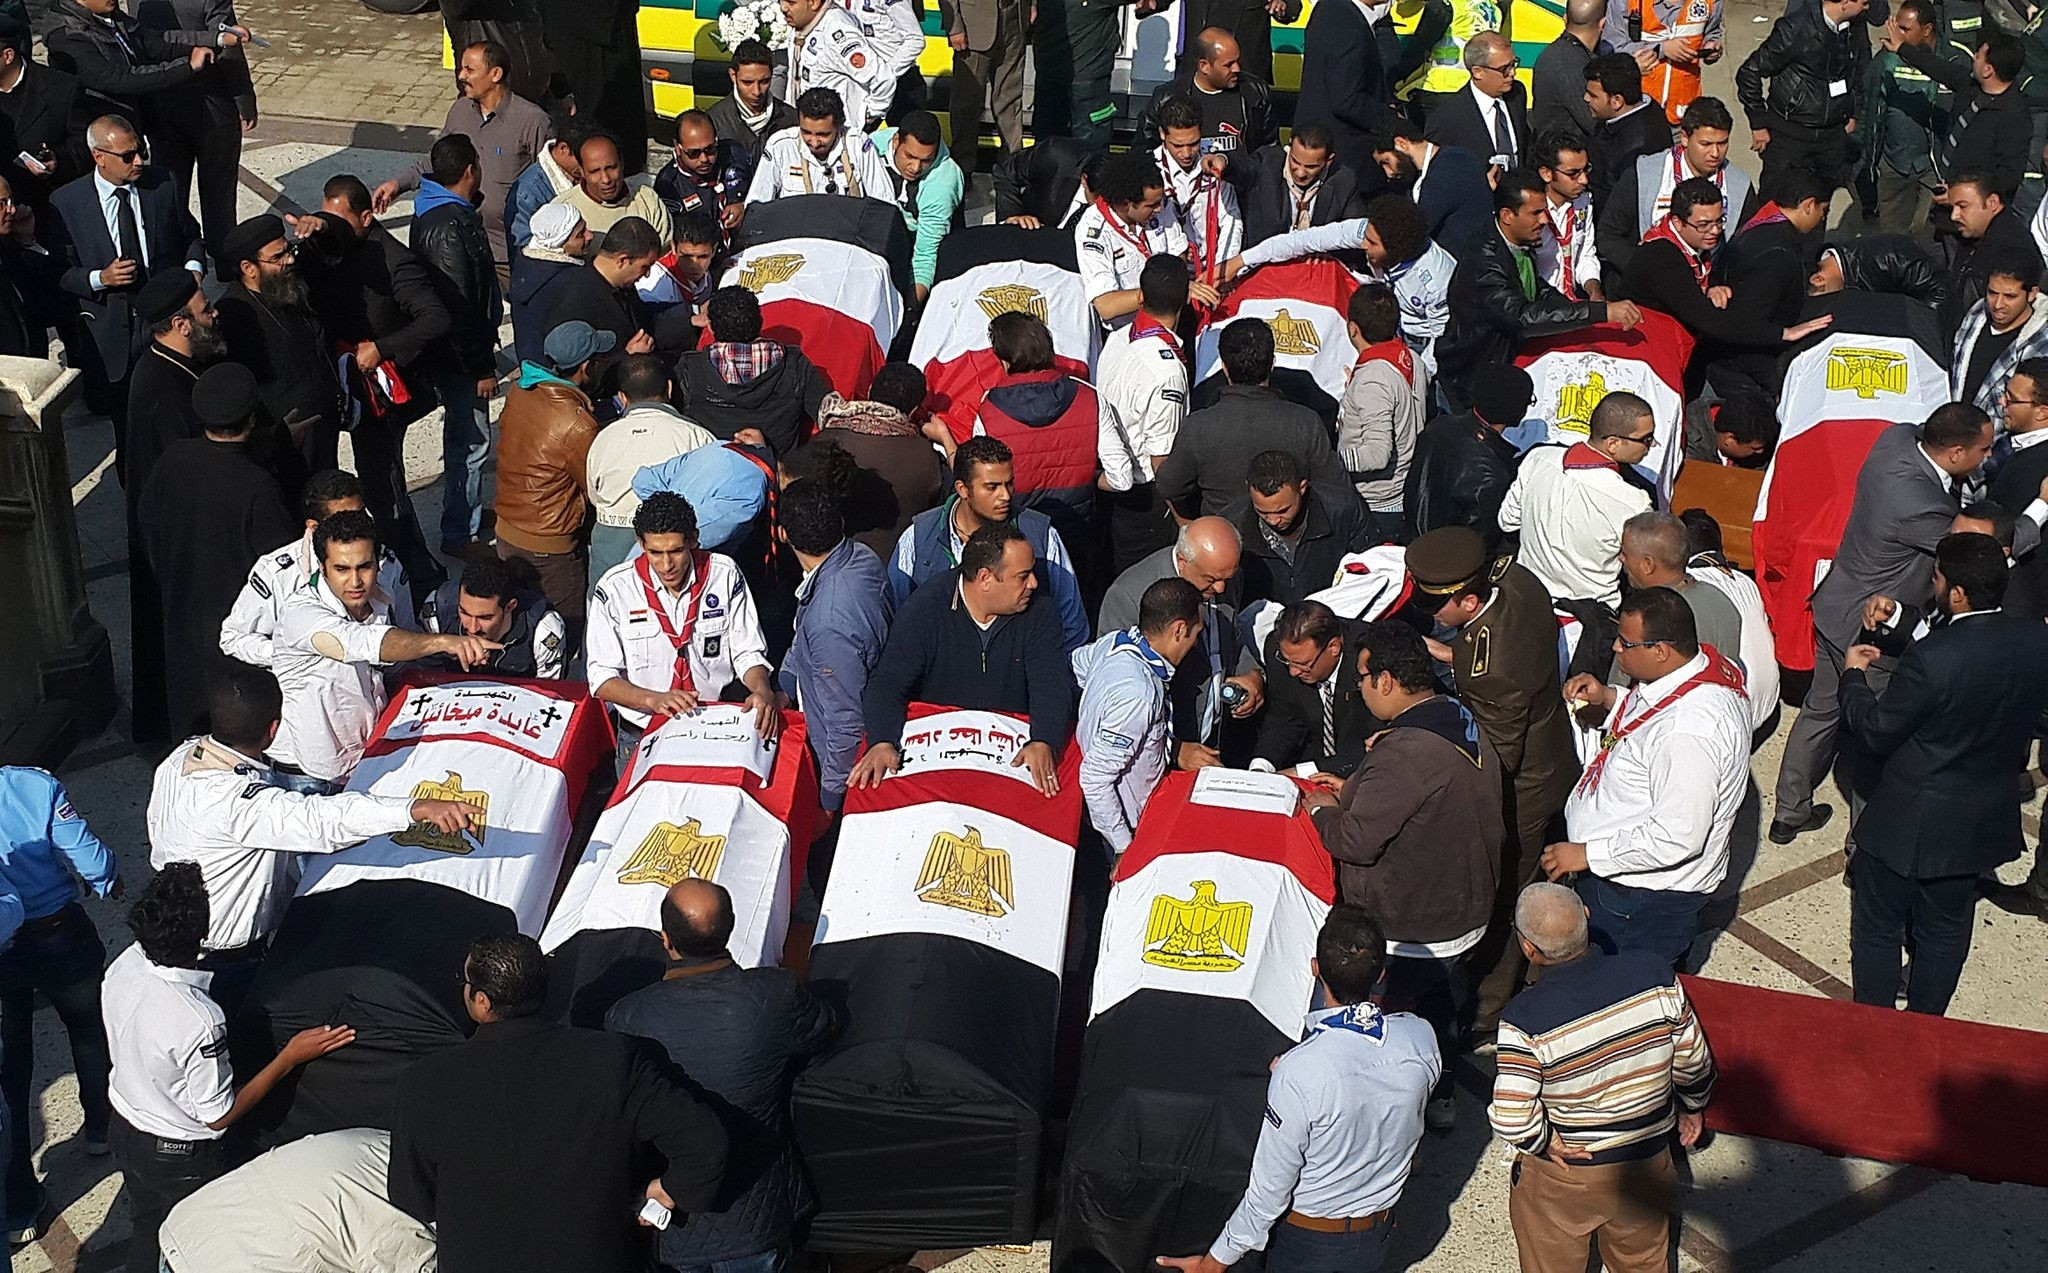 Egyptian mourners and officials stand next to the coffins of the victims of a bomb explosion that targeted a Coptic Orthodox Church in Cairo. (AFP Photo)